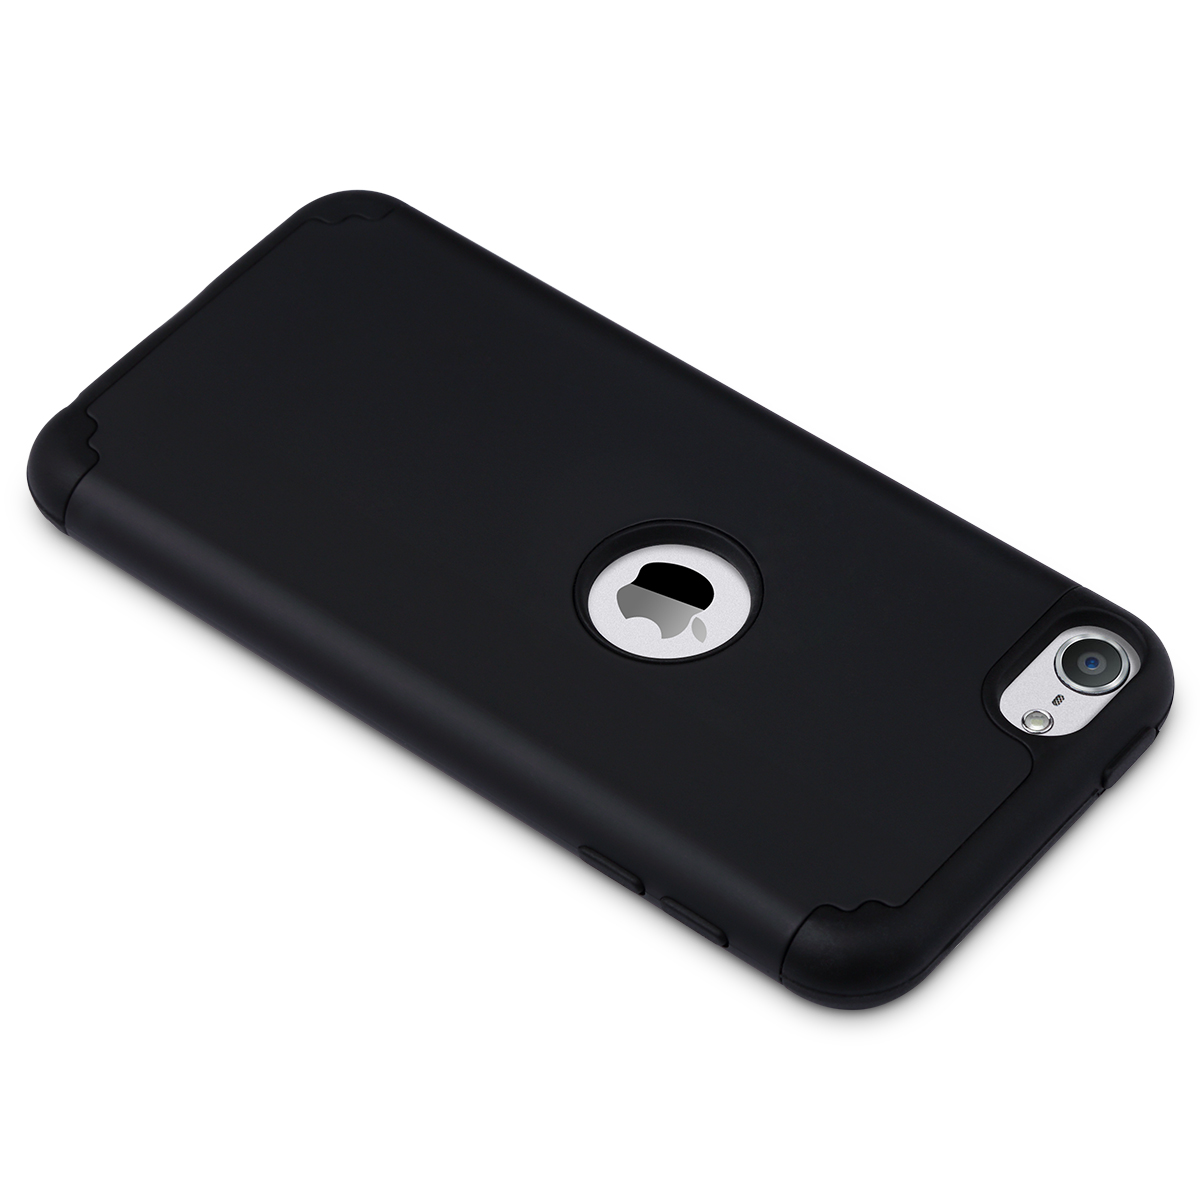 Hybrid-Hard-Protective-Silicon-TPU-Case-for-Apple-iPod-Touch-5-6th-Generation thumbnail 111